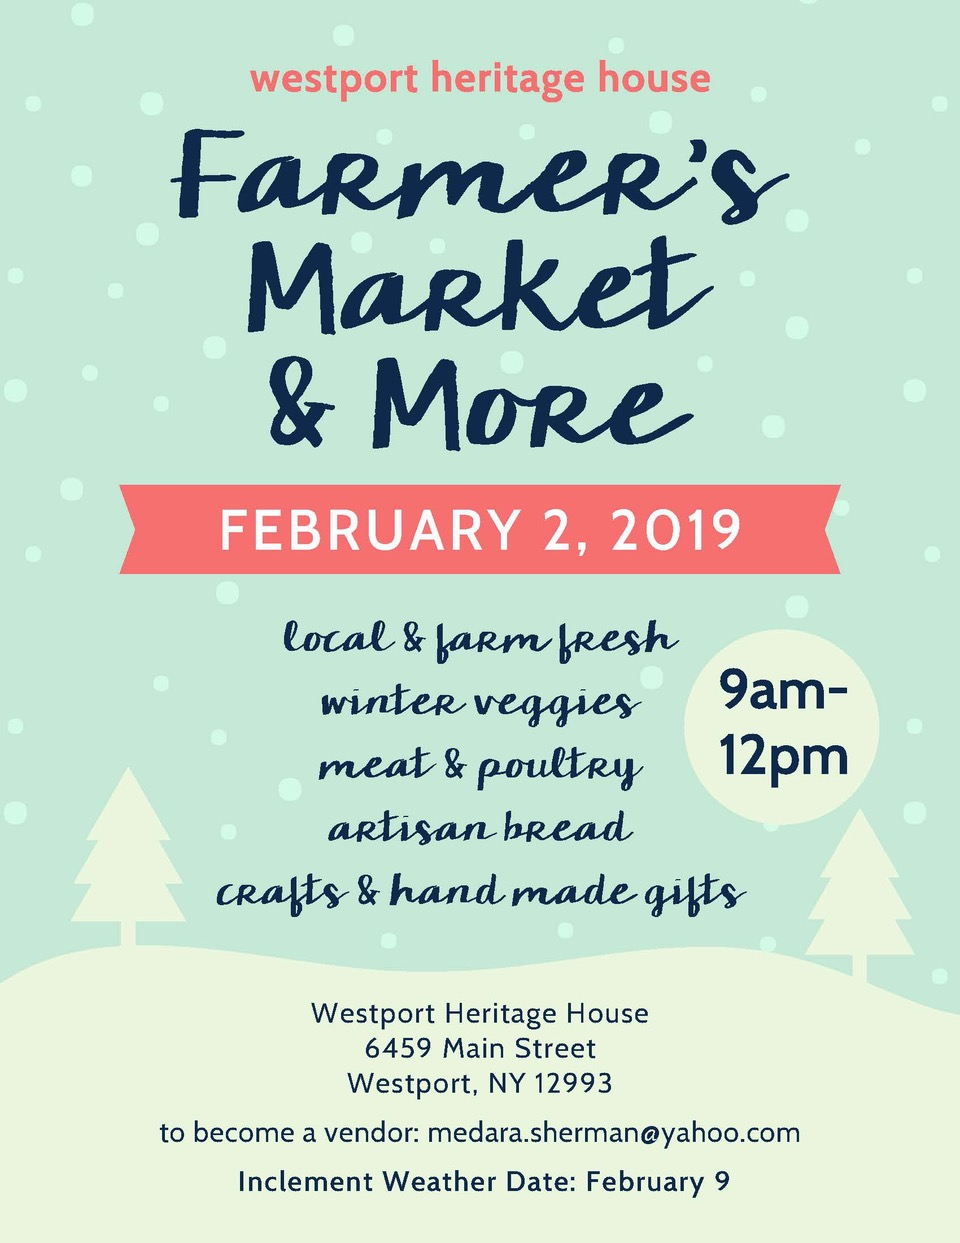 HH_FarmersMarket_Feb2019.jpg